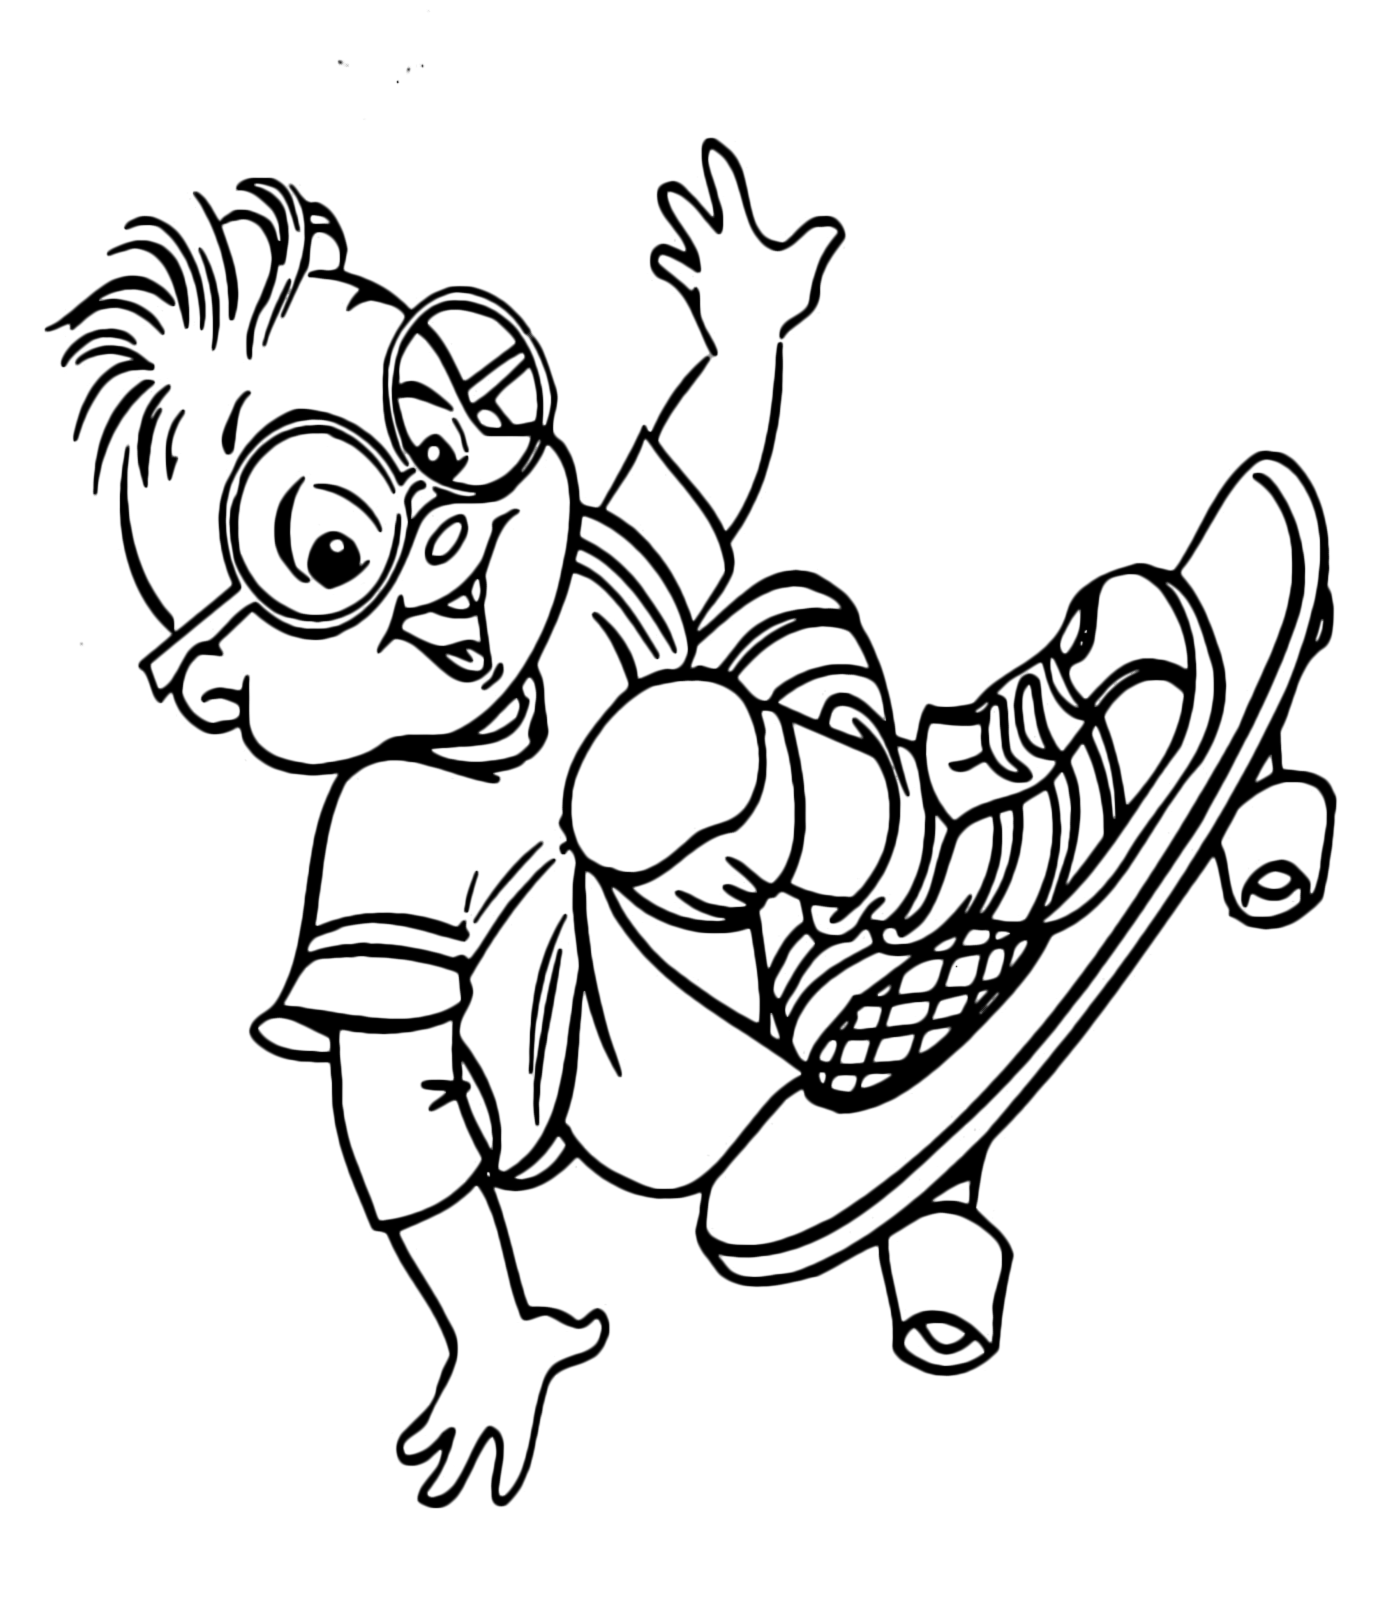 Alvin And The Chipmunks Coloring Pages Simon. top 25 free printable ...